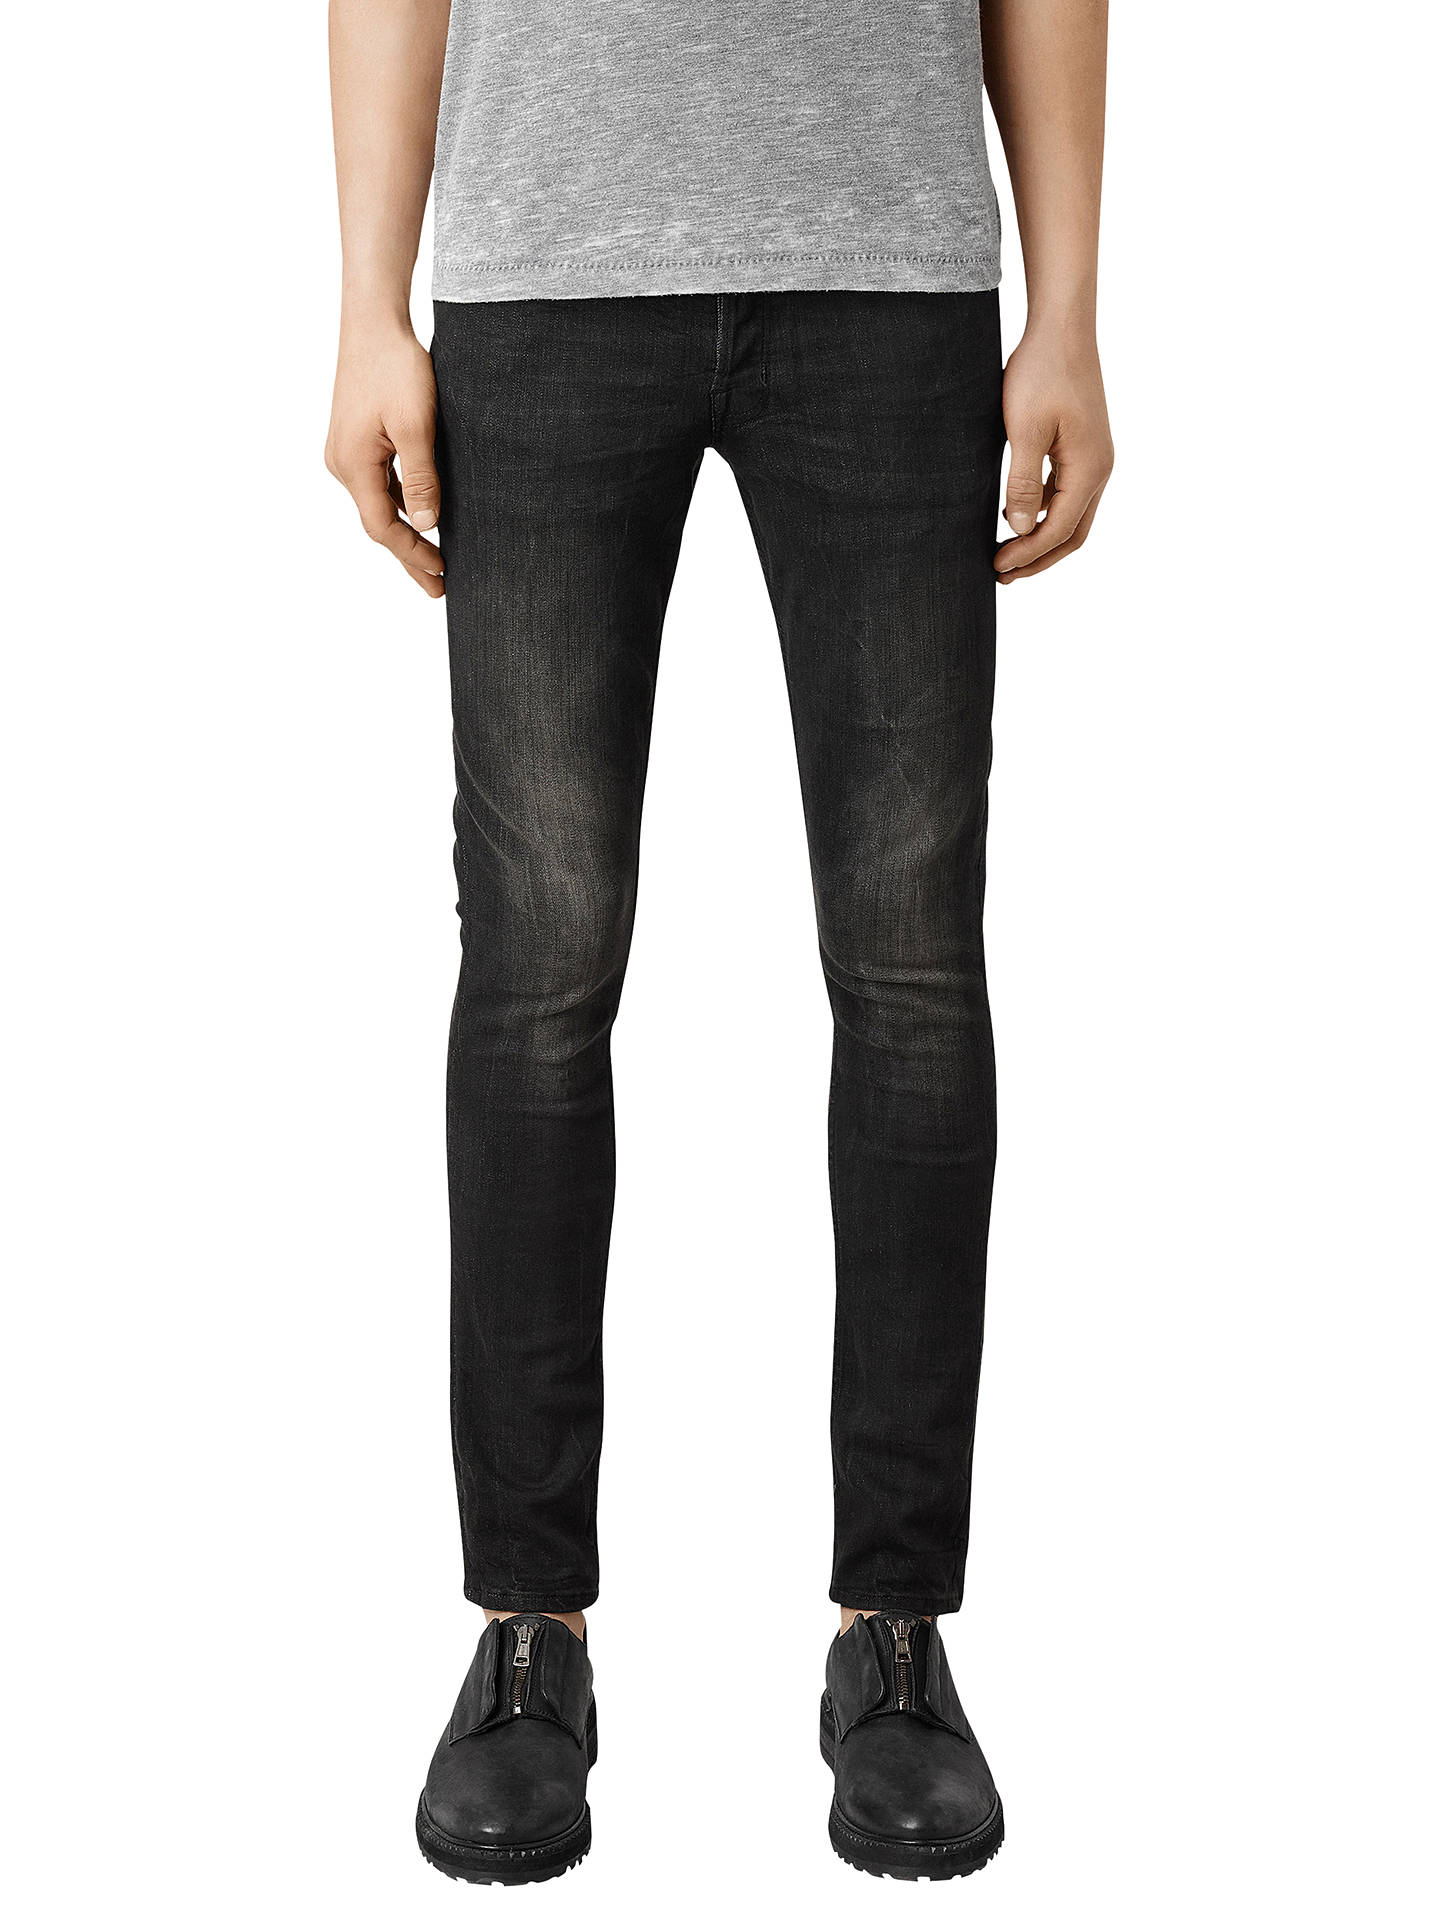 BuyAllSaints Print Cigarette Jeans, Black, 30R Online at johnlewis.com